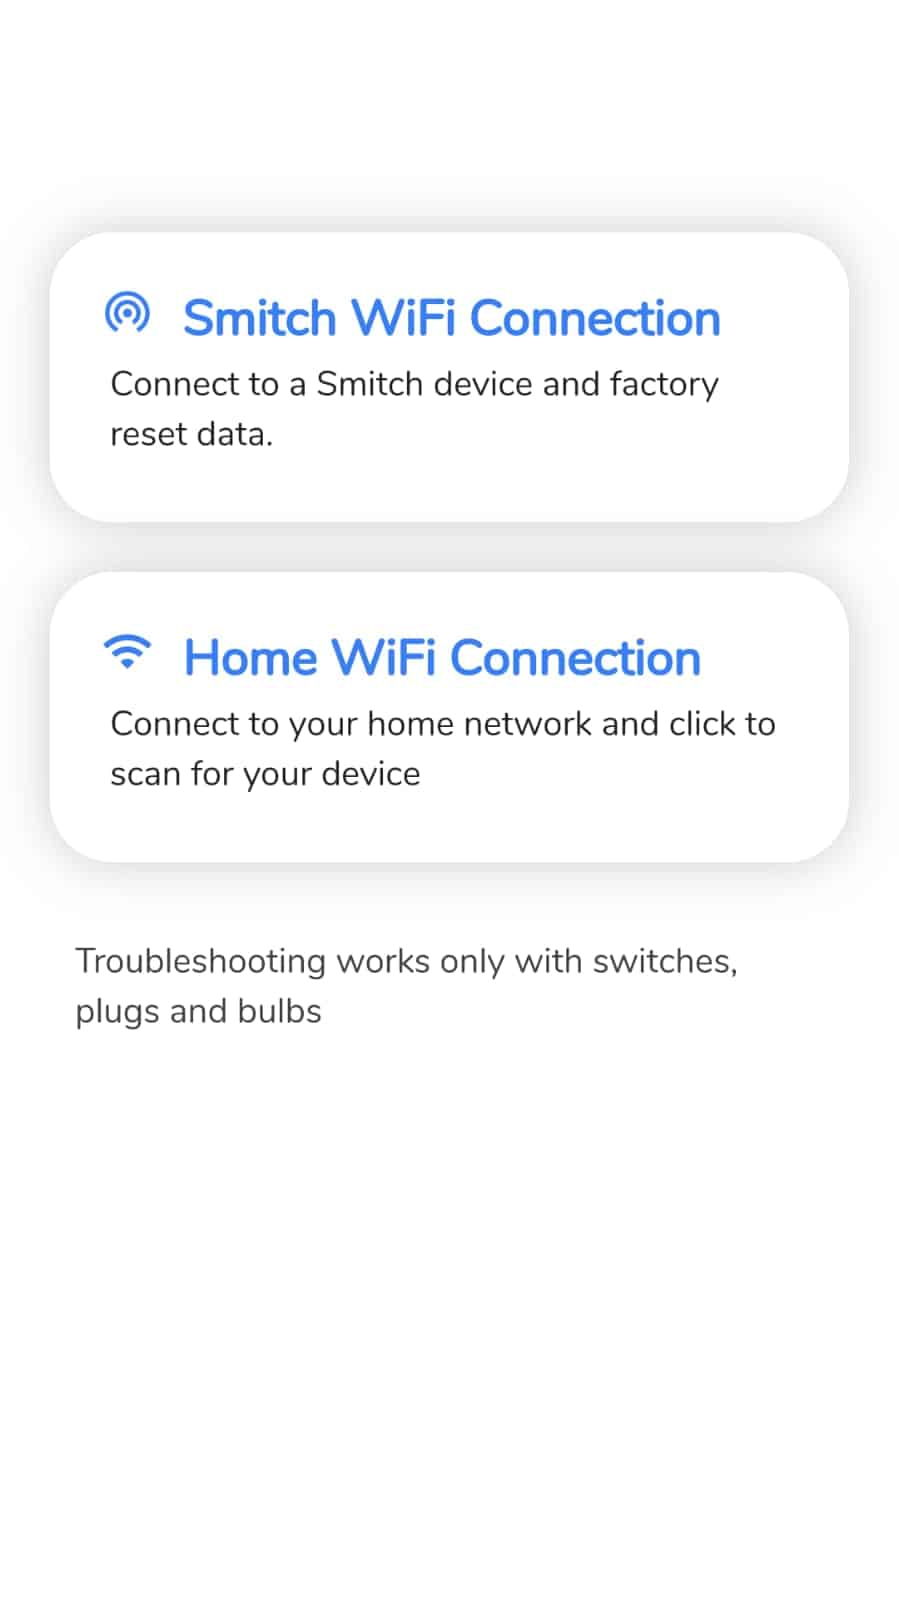 smitch smart bulb connecting to home Wifi network